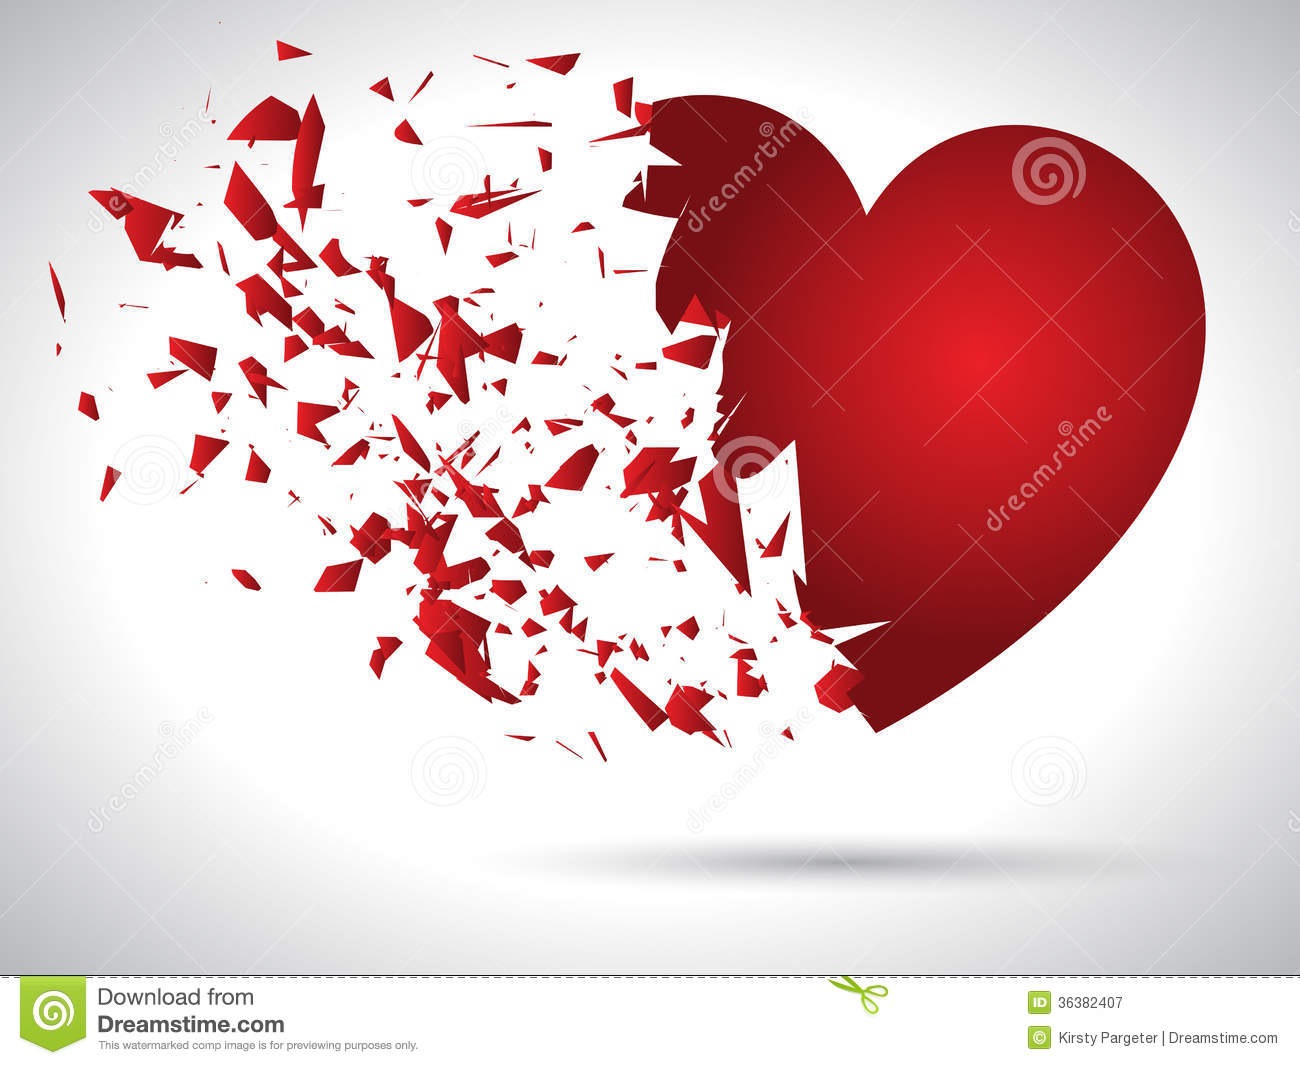 Exploding Heart Royalty Free Stock Photography - Image: 36382407